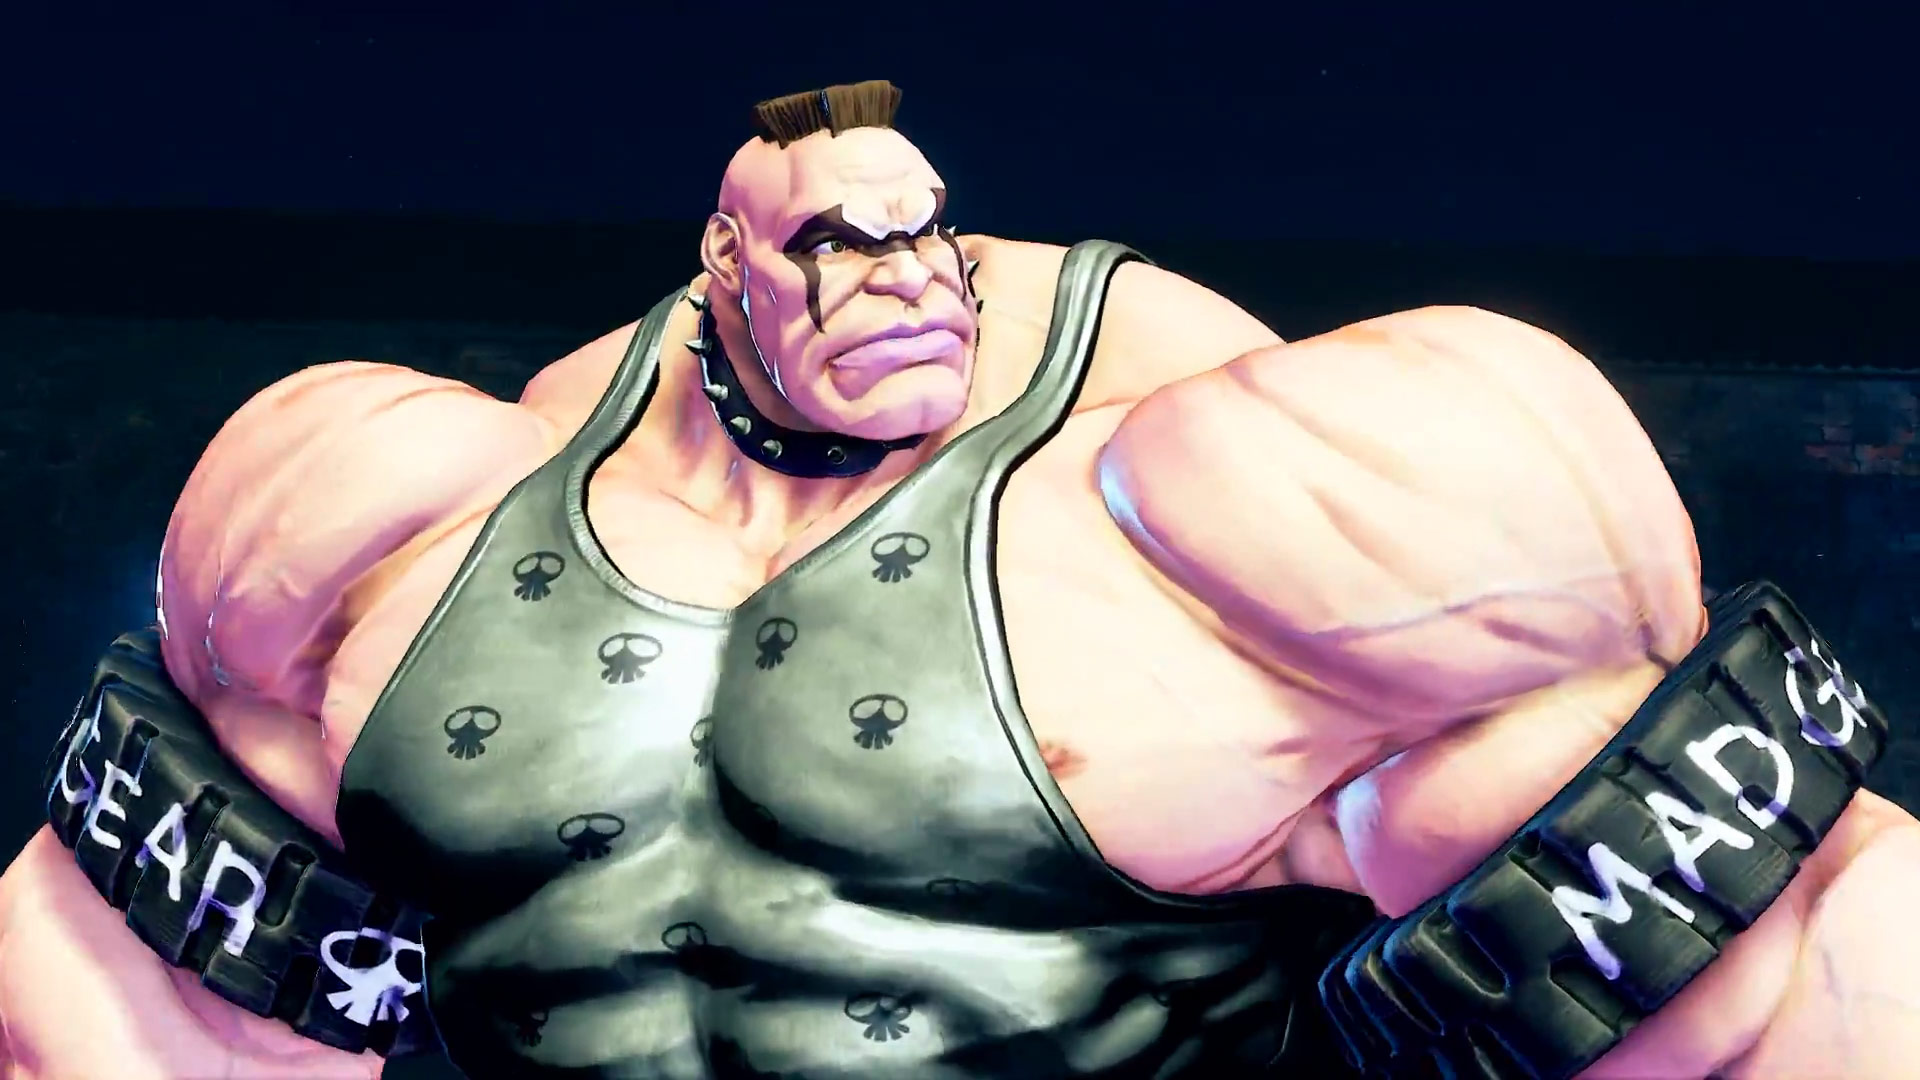 Abigail Street Fighter 5 screen shots 1 out of 11 image gallery